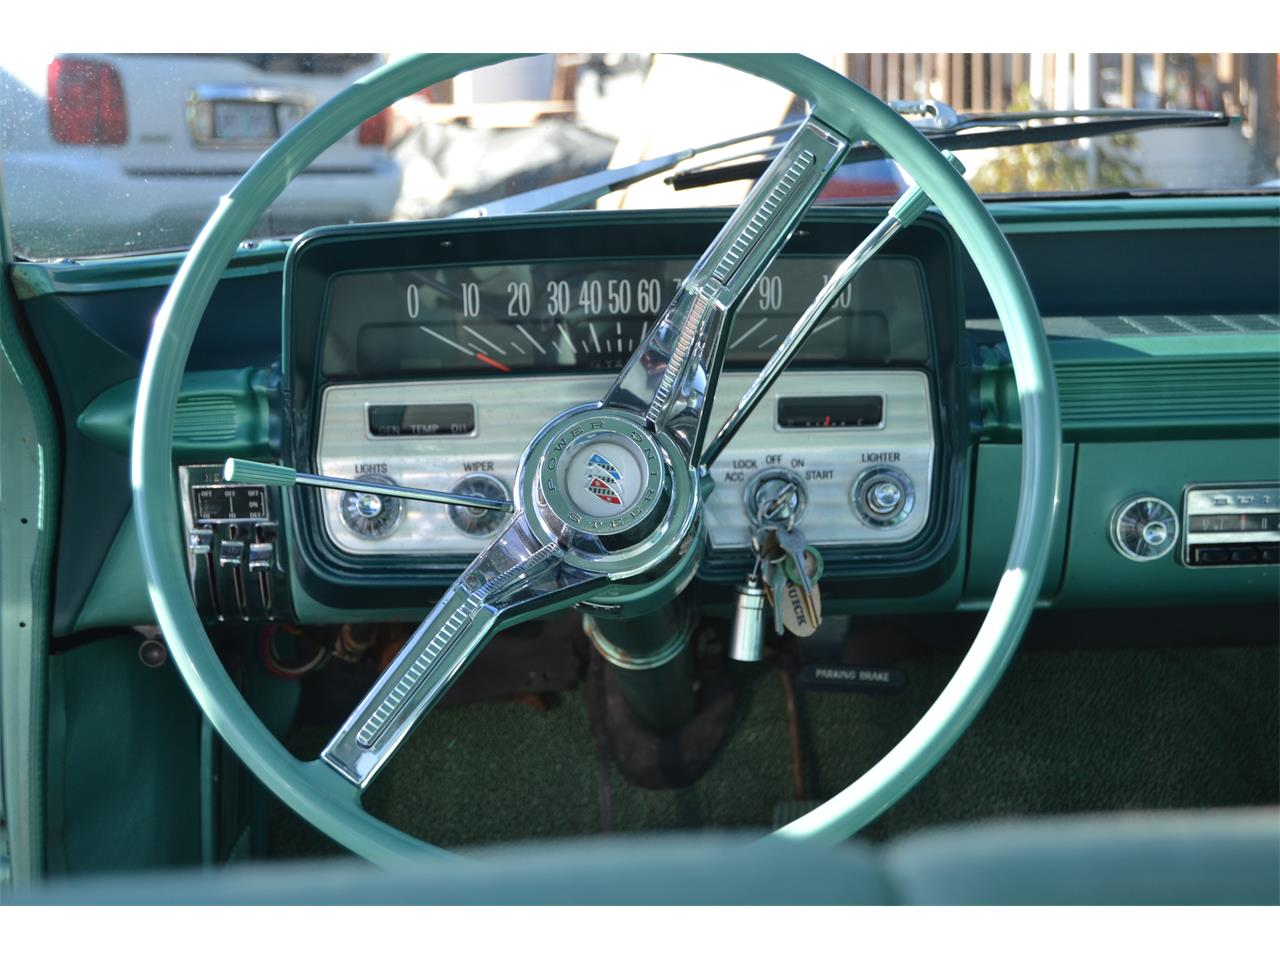 Large Picture of Classic 1961 Buick Special Deluxe located in Beaverton Oregon - $6,850.00 - P7XC